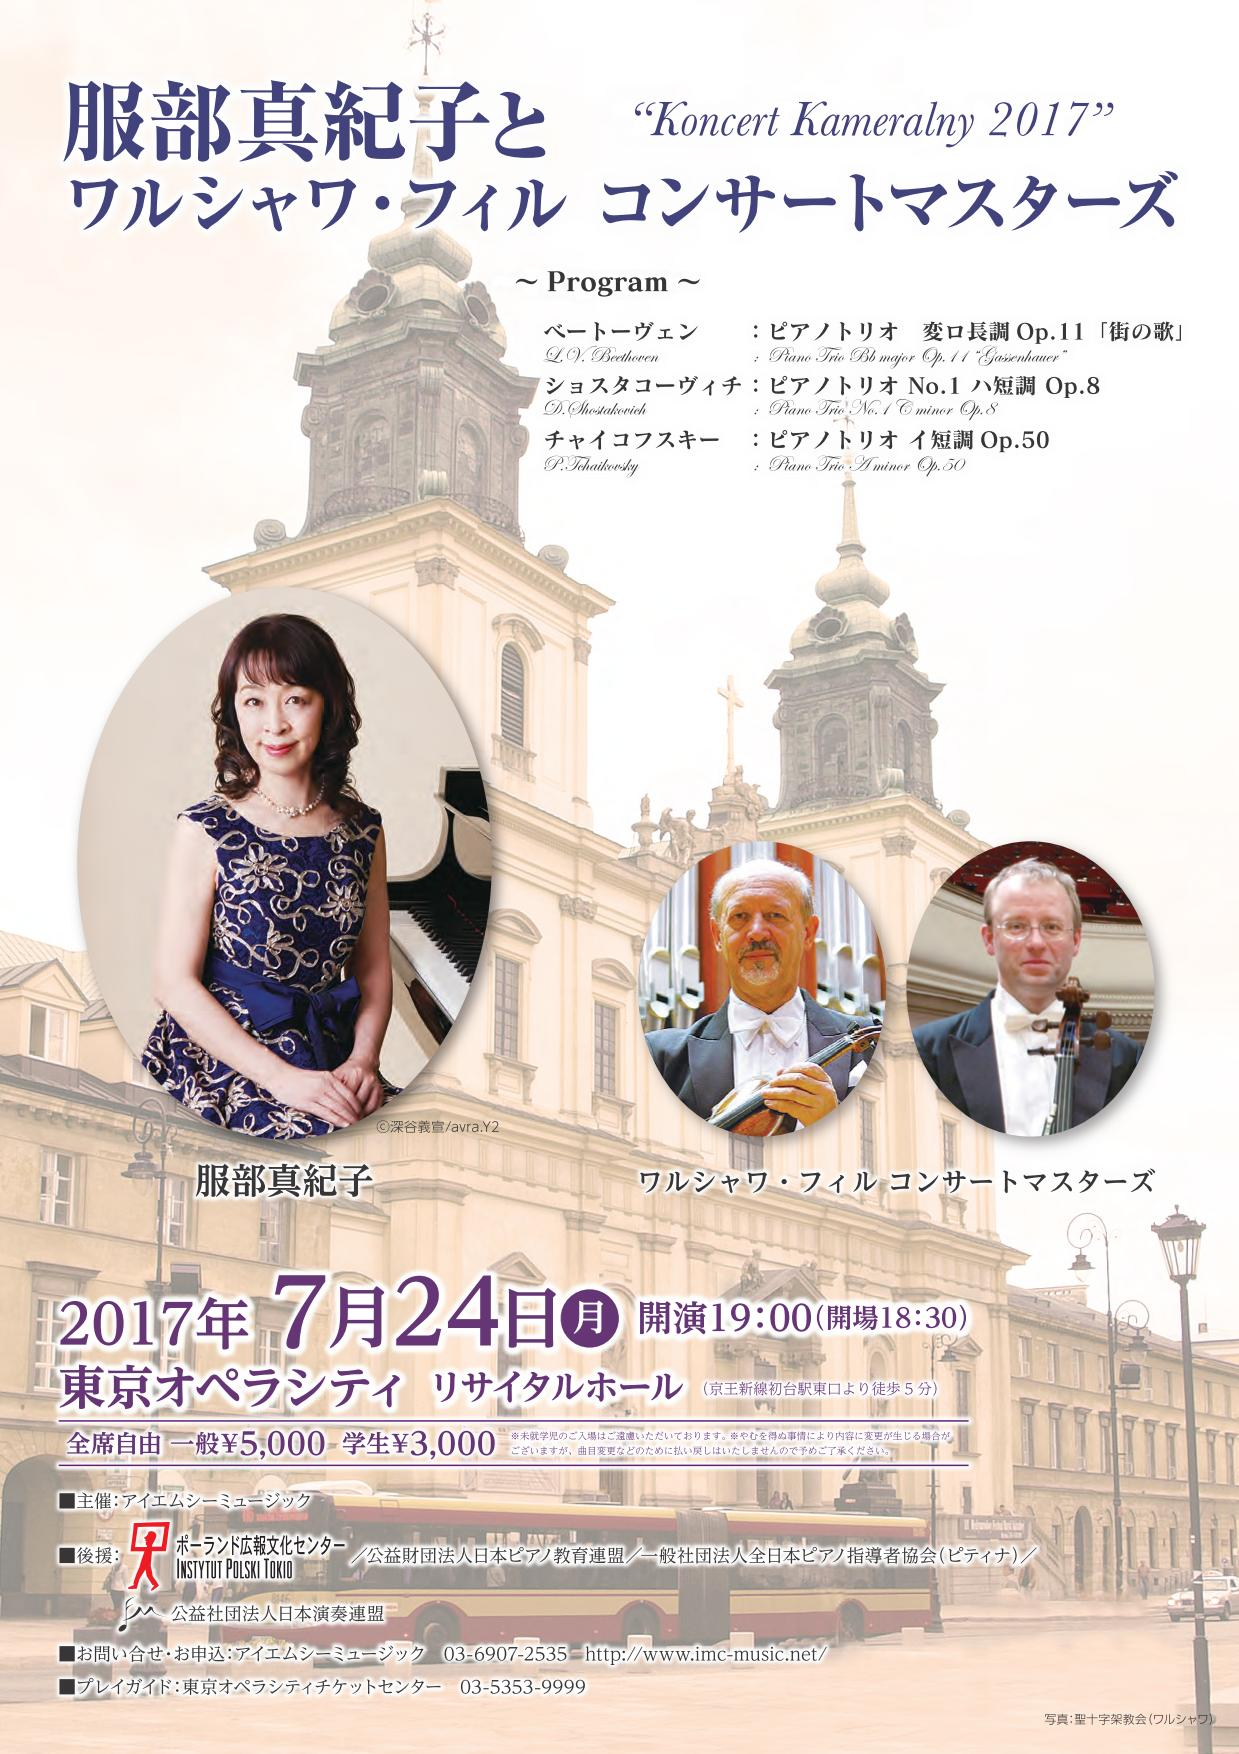 Warsaw Phil Concert Masters 2017 0724